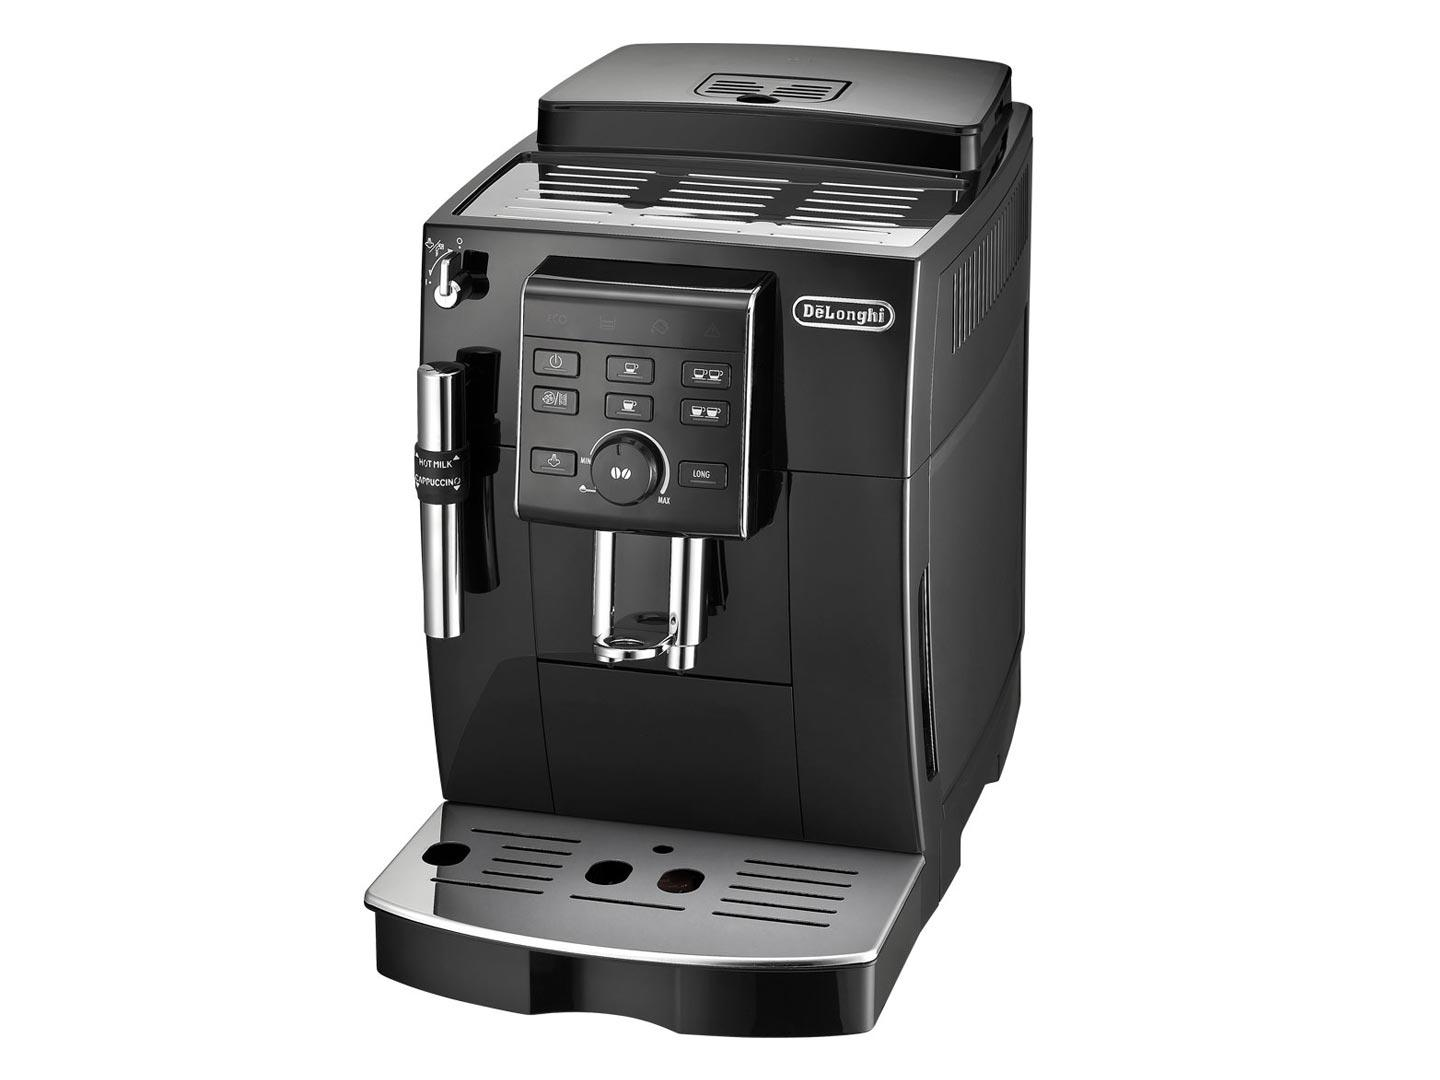 Lowest Price Delonghi Coffee Machine Ecam 23 120Sb